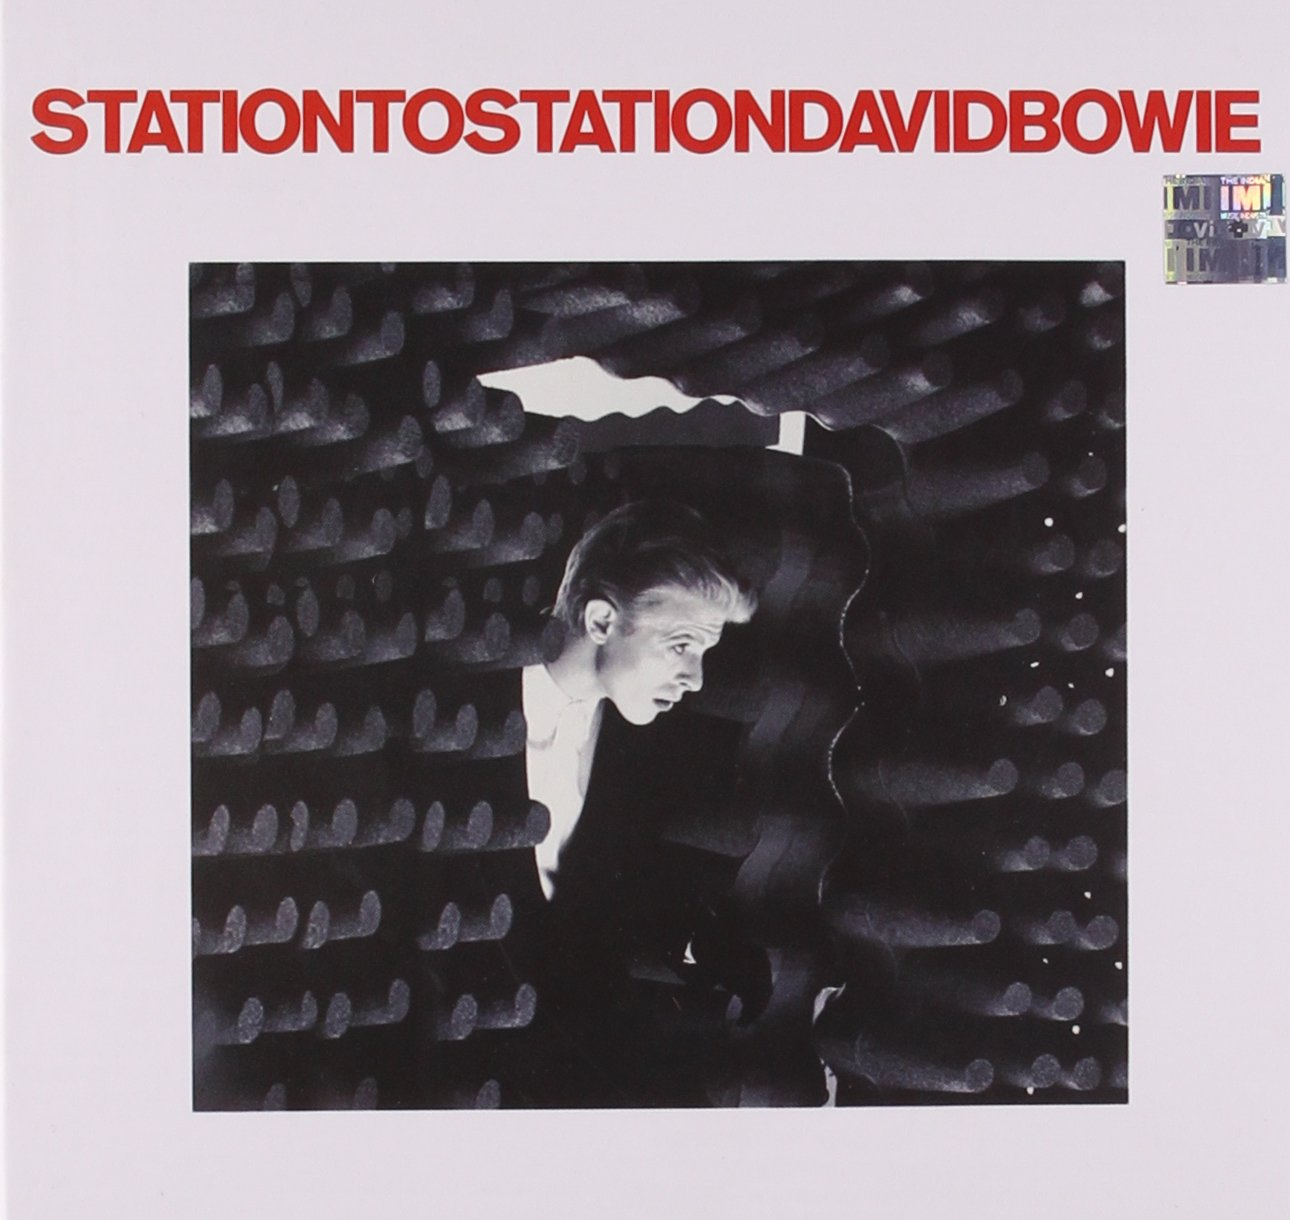 Station to Station by Parlophone (Wea)